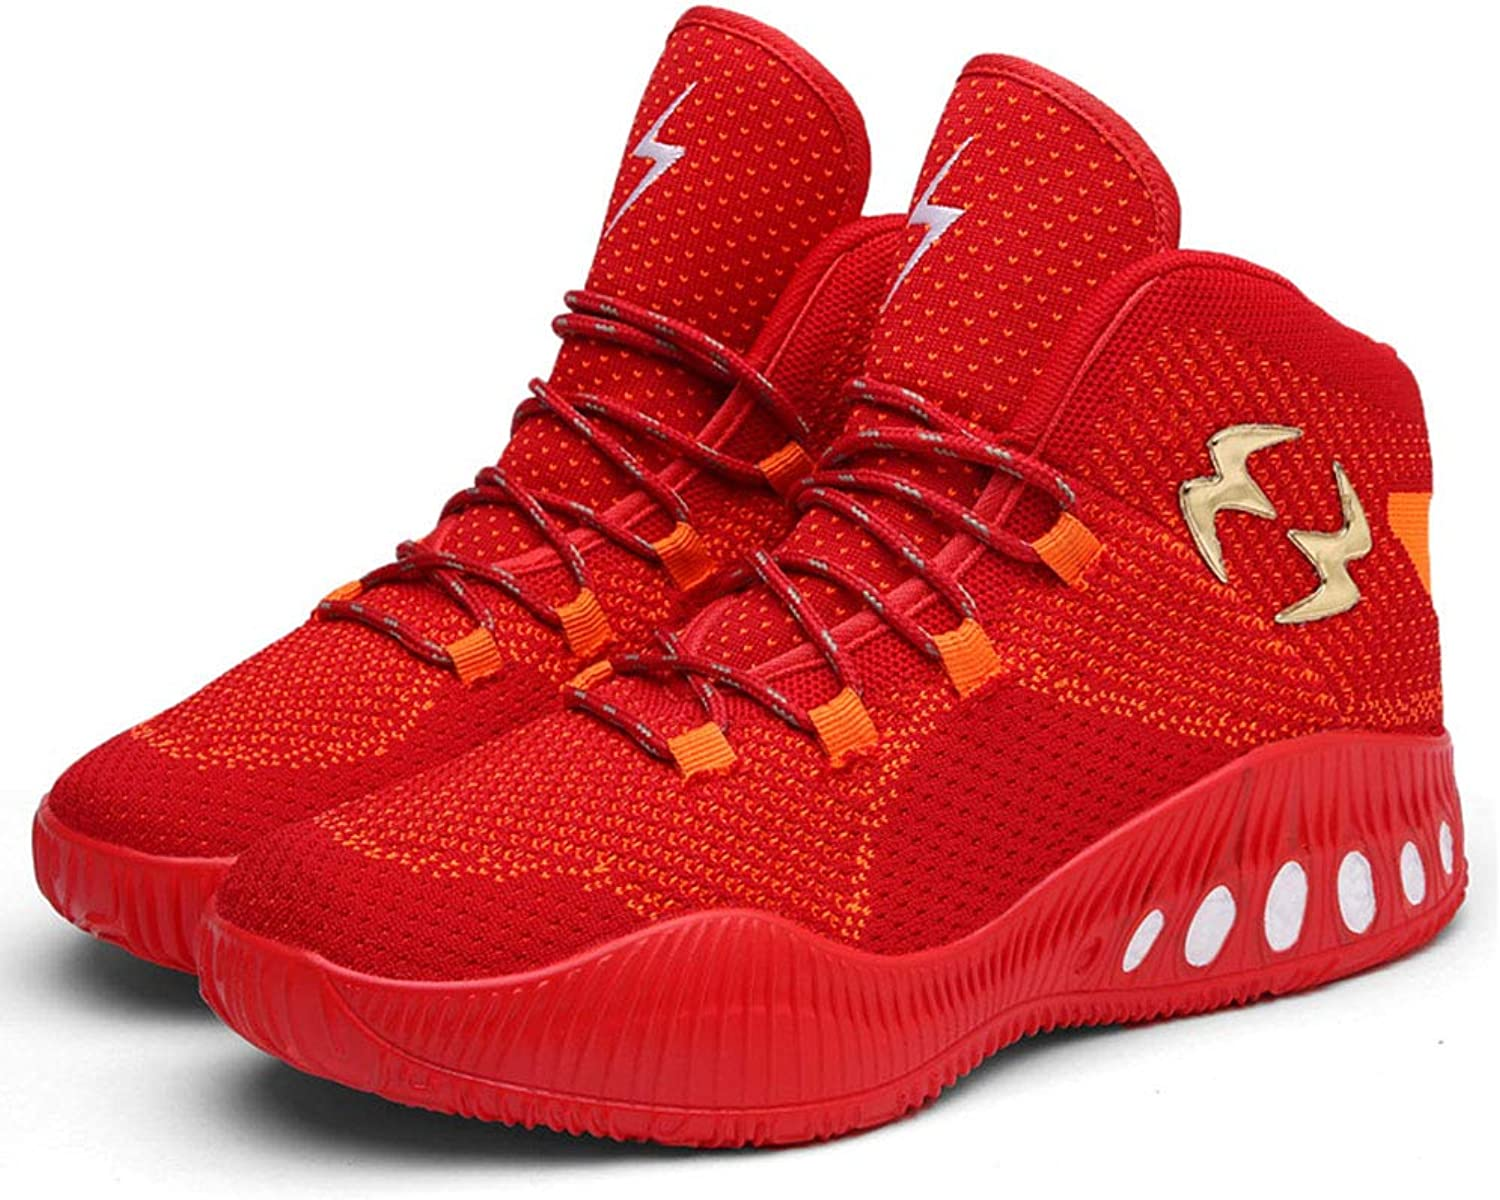 2019 New Men's Sneakers Trend Spring Autumn Mens Casual Sports shoes Large Size Flying Woven High Basketball shoes Running shoes,Red,45